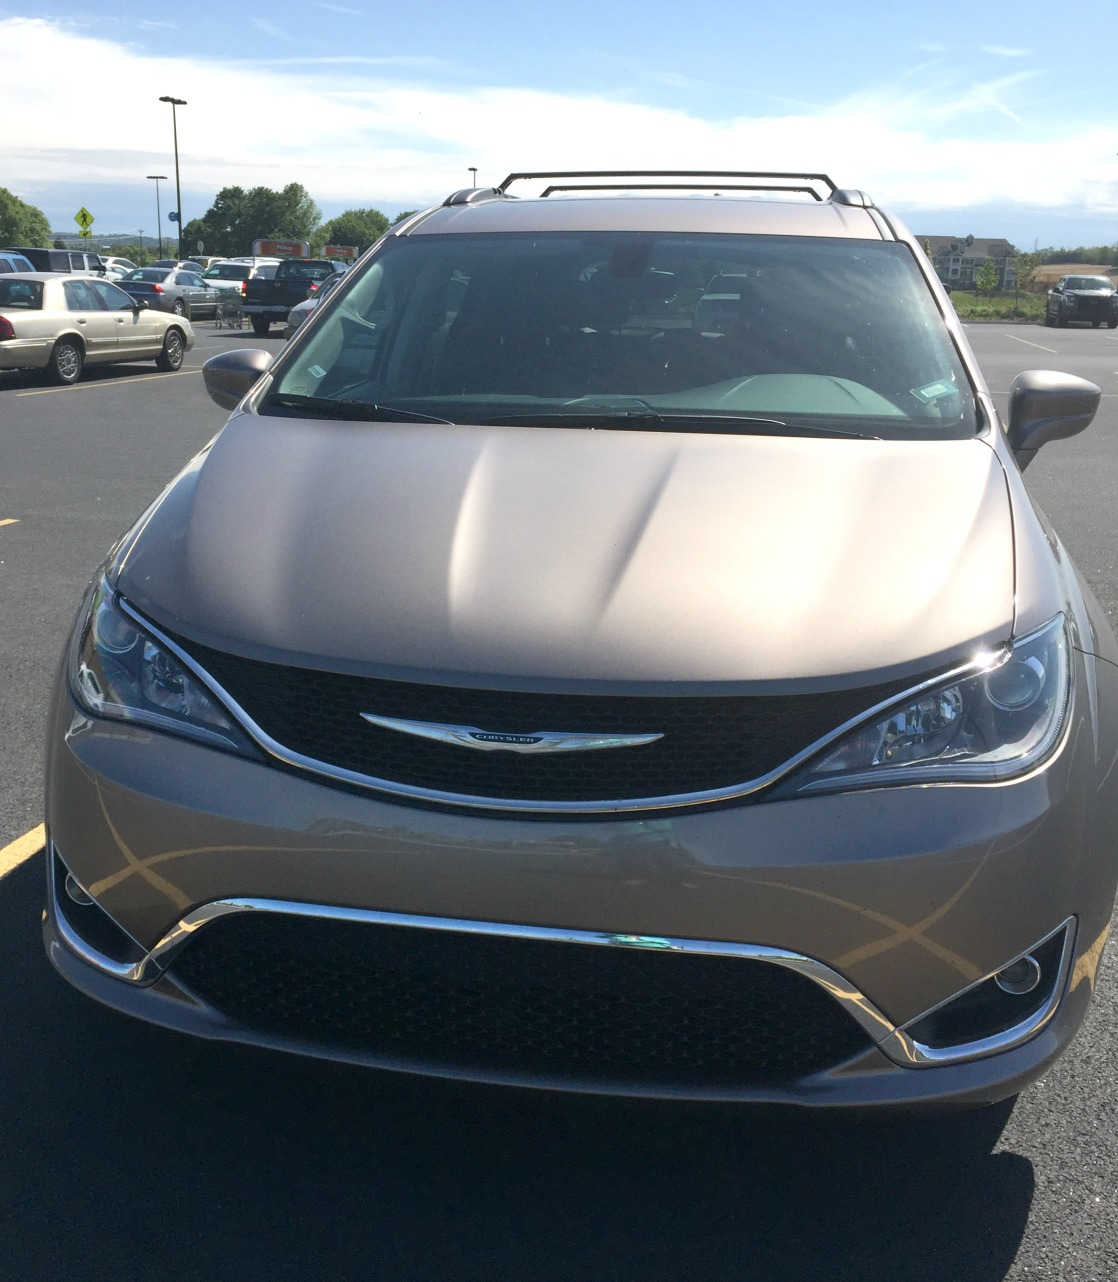 refreshing car review the chrysler pacifica minivan is a beauty. Black Bedroom Furniture Sets. Home Design Ideas